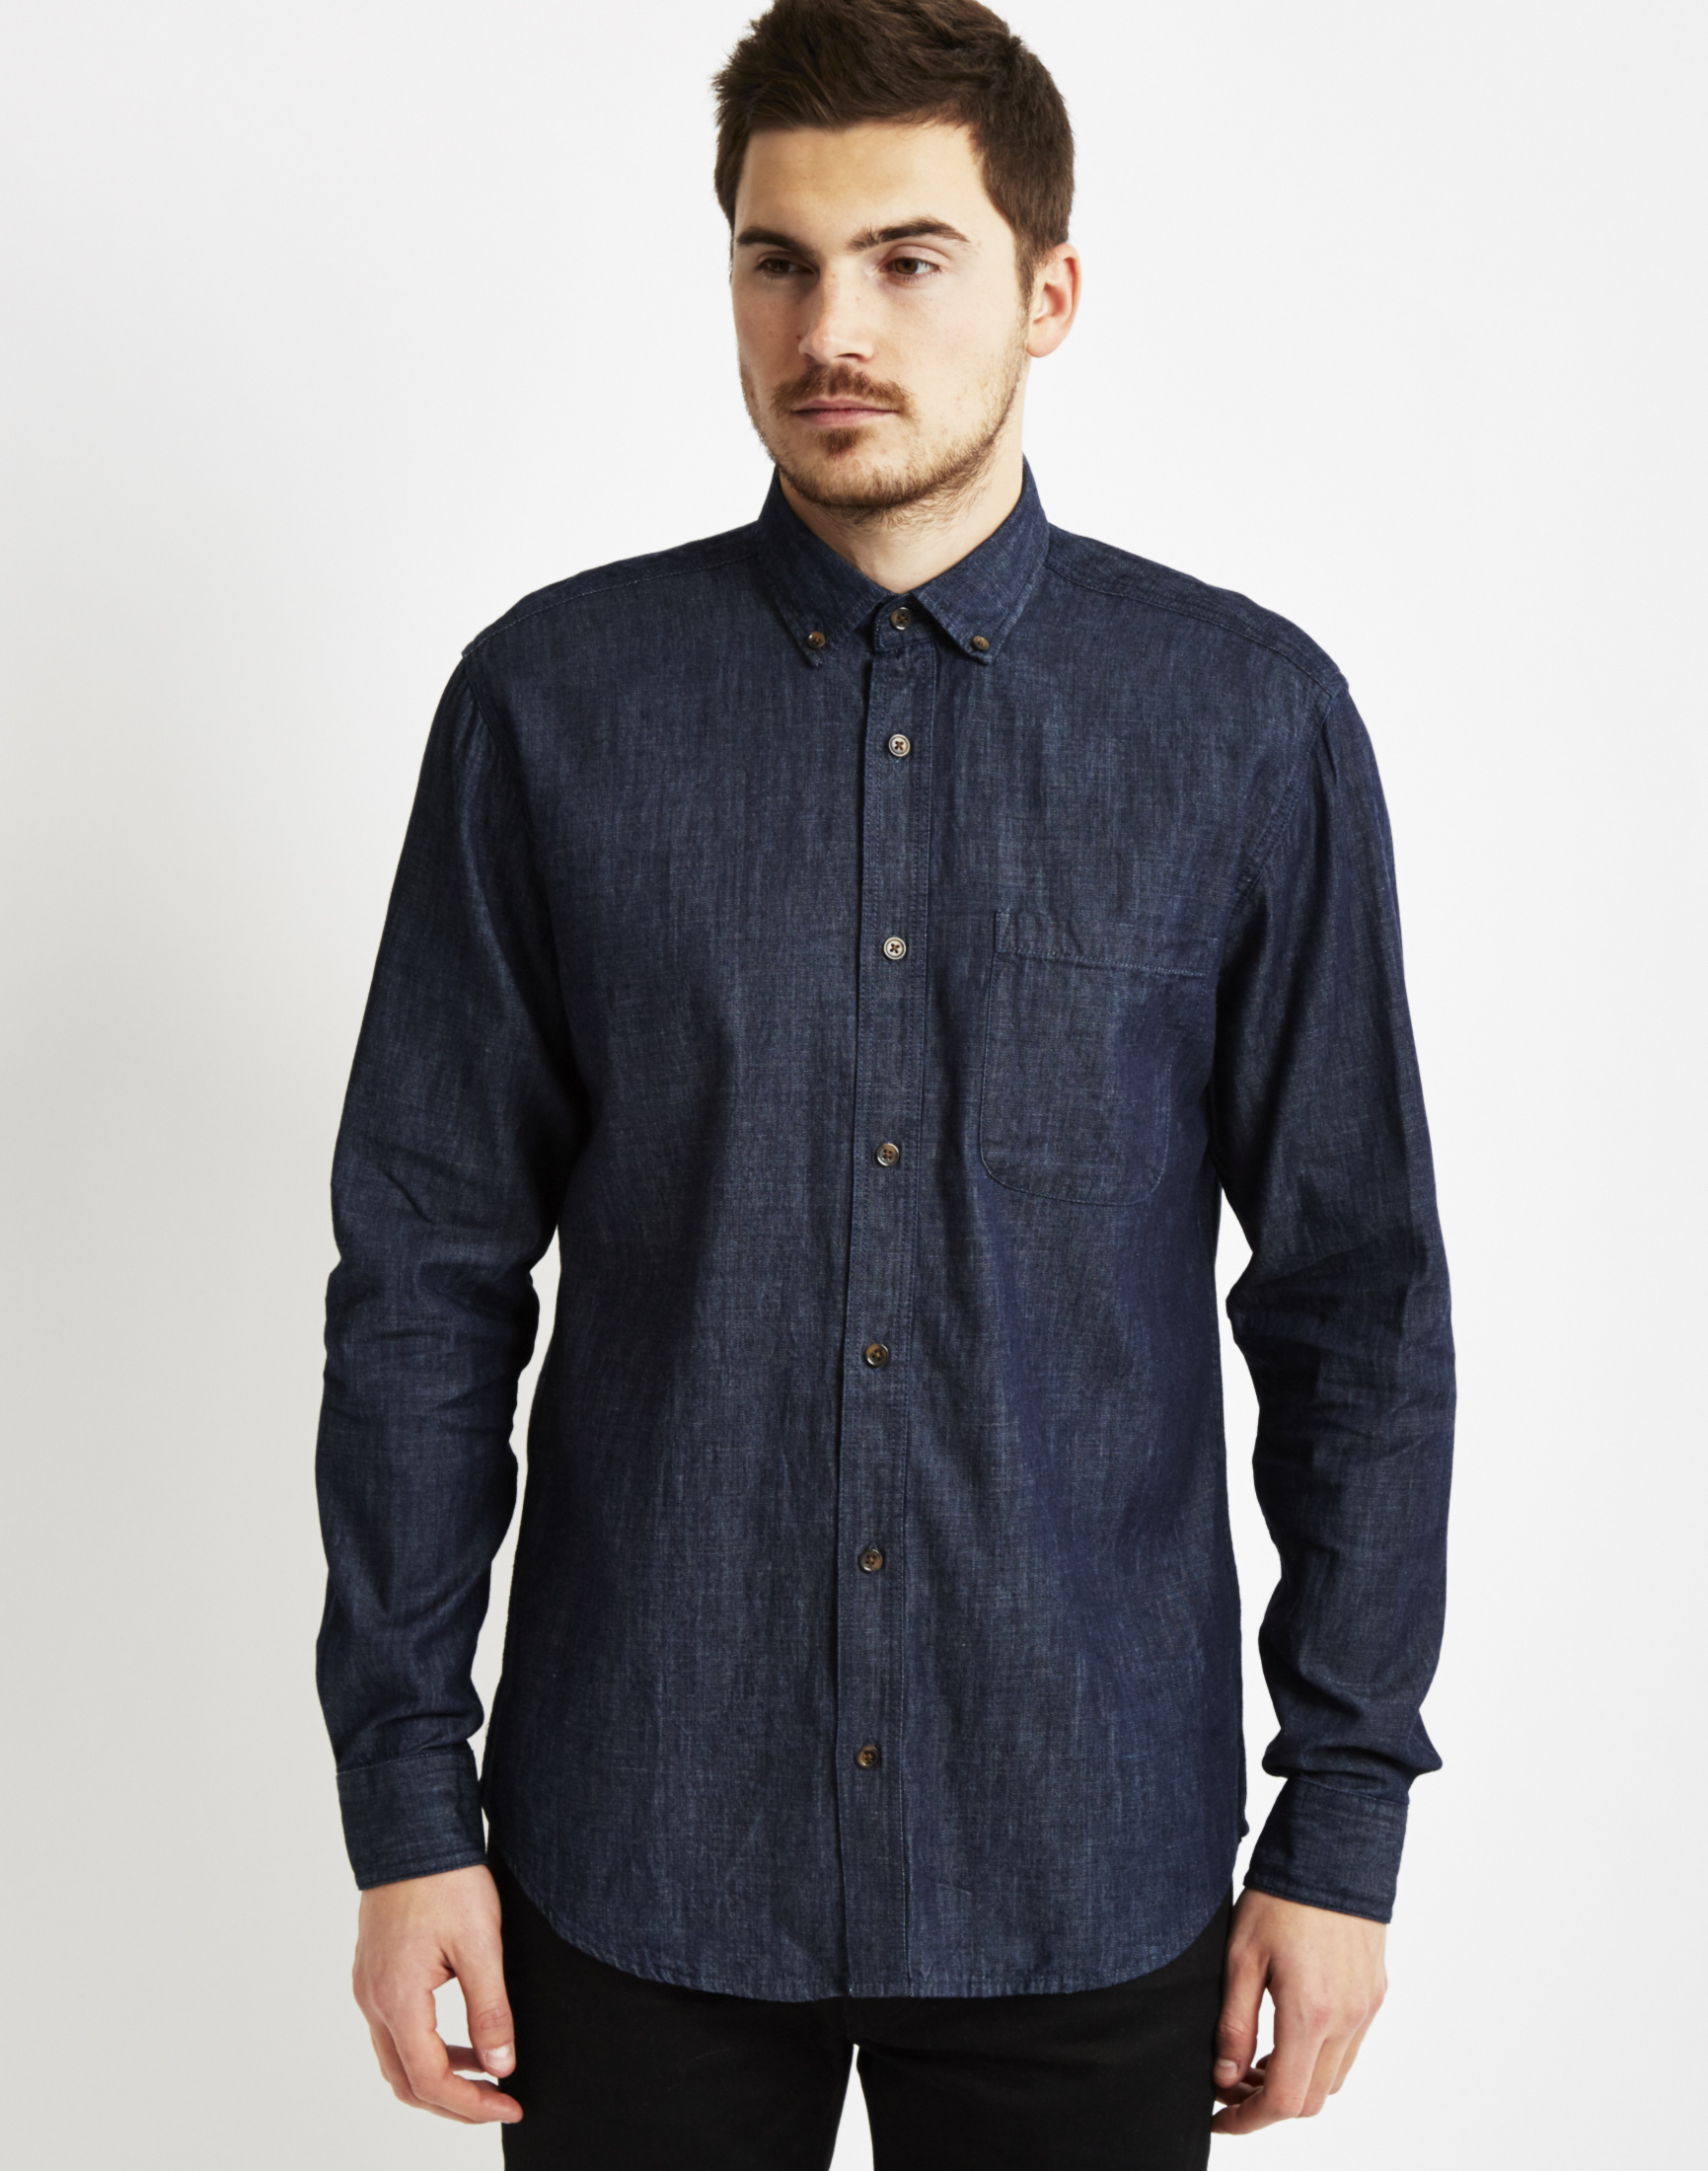 to wear - Blue Navy shirt men pictures video